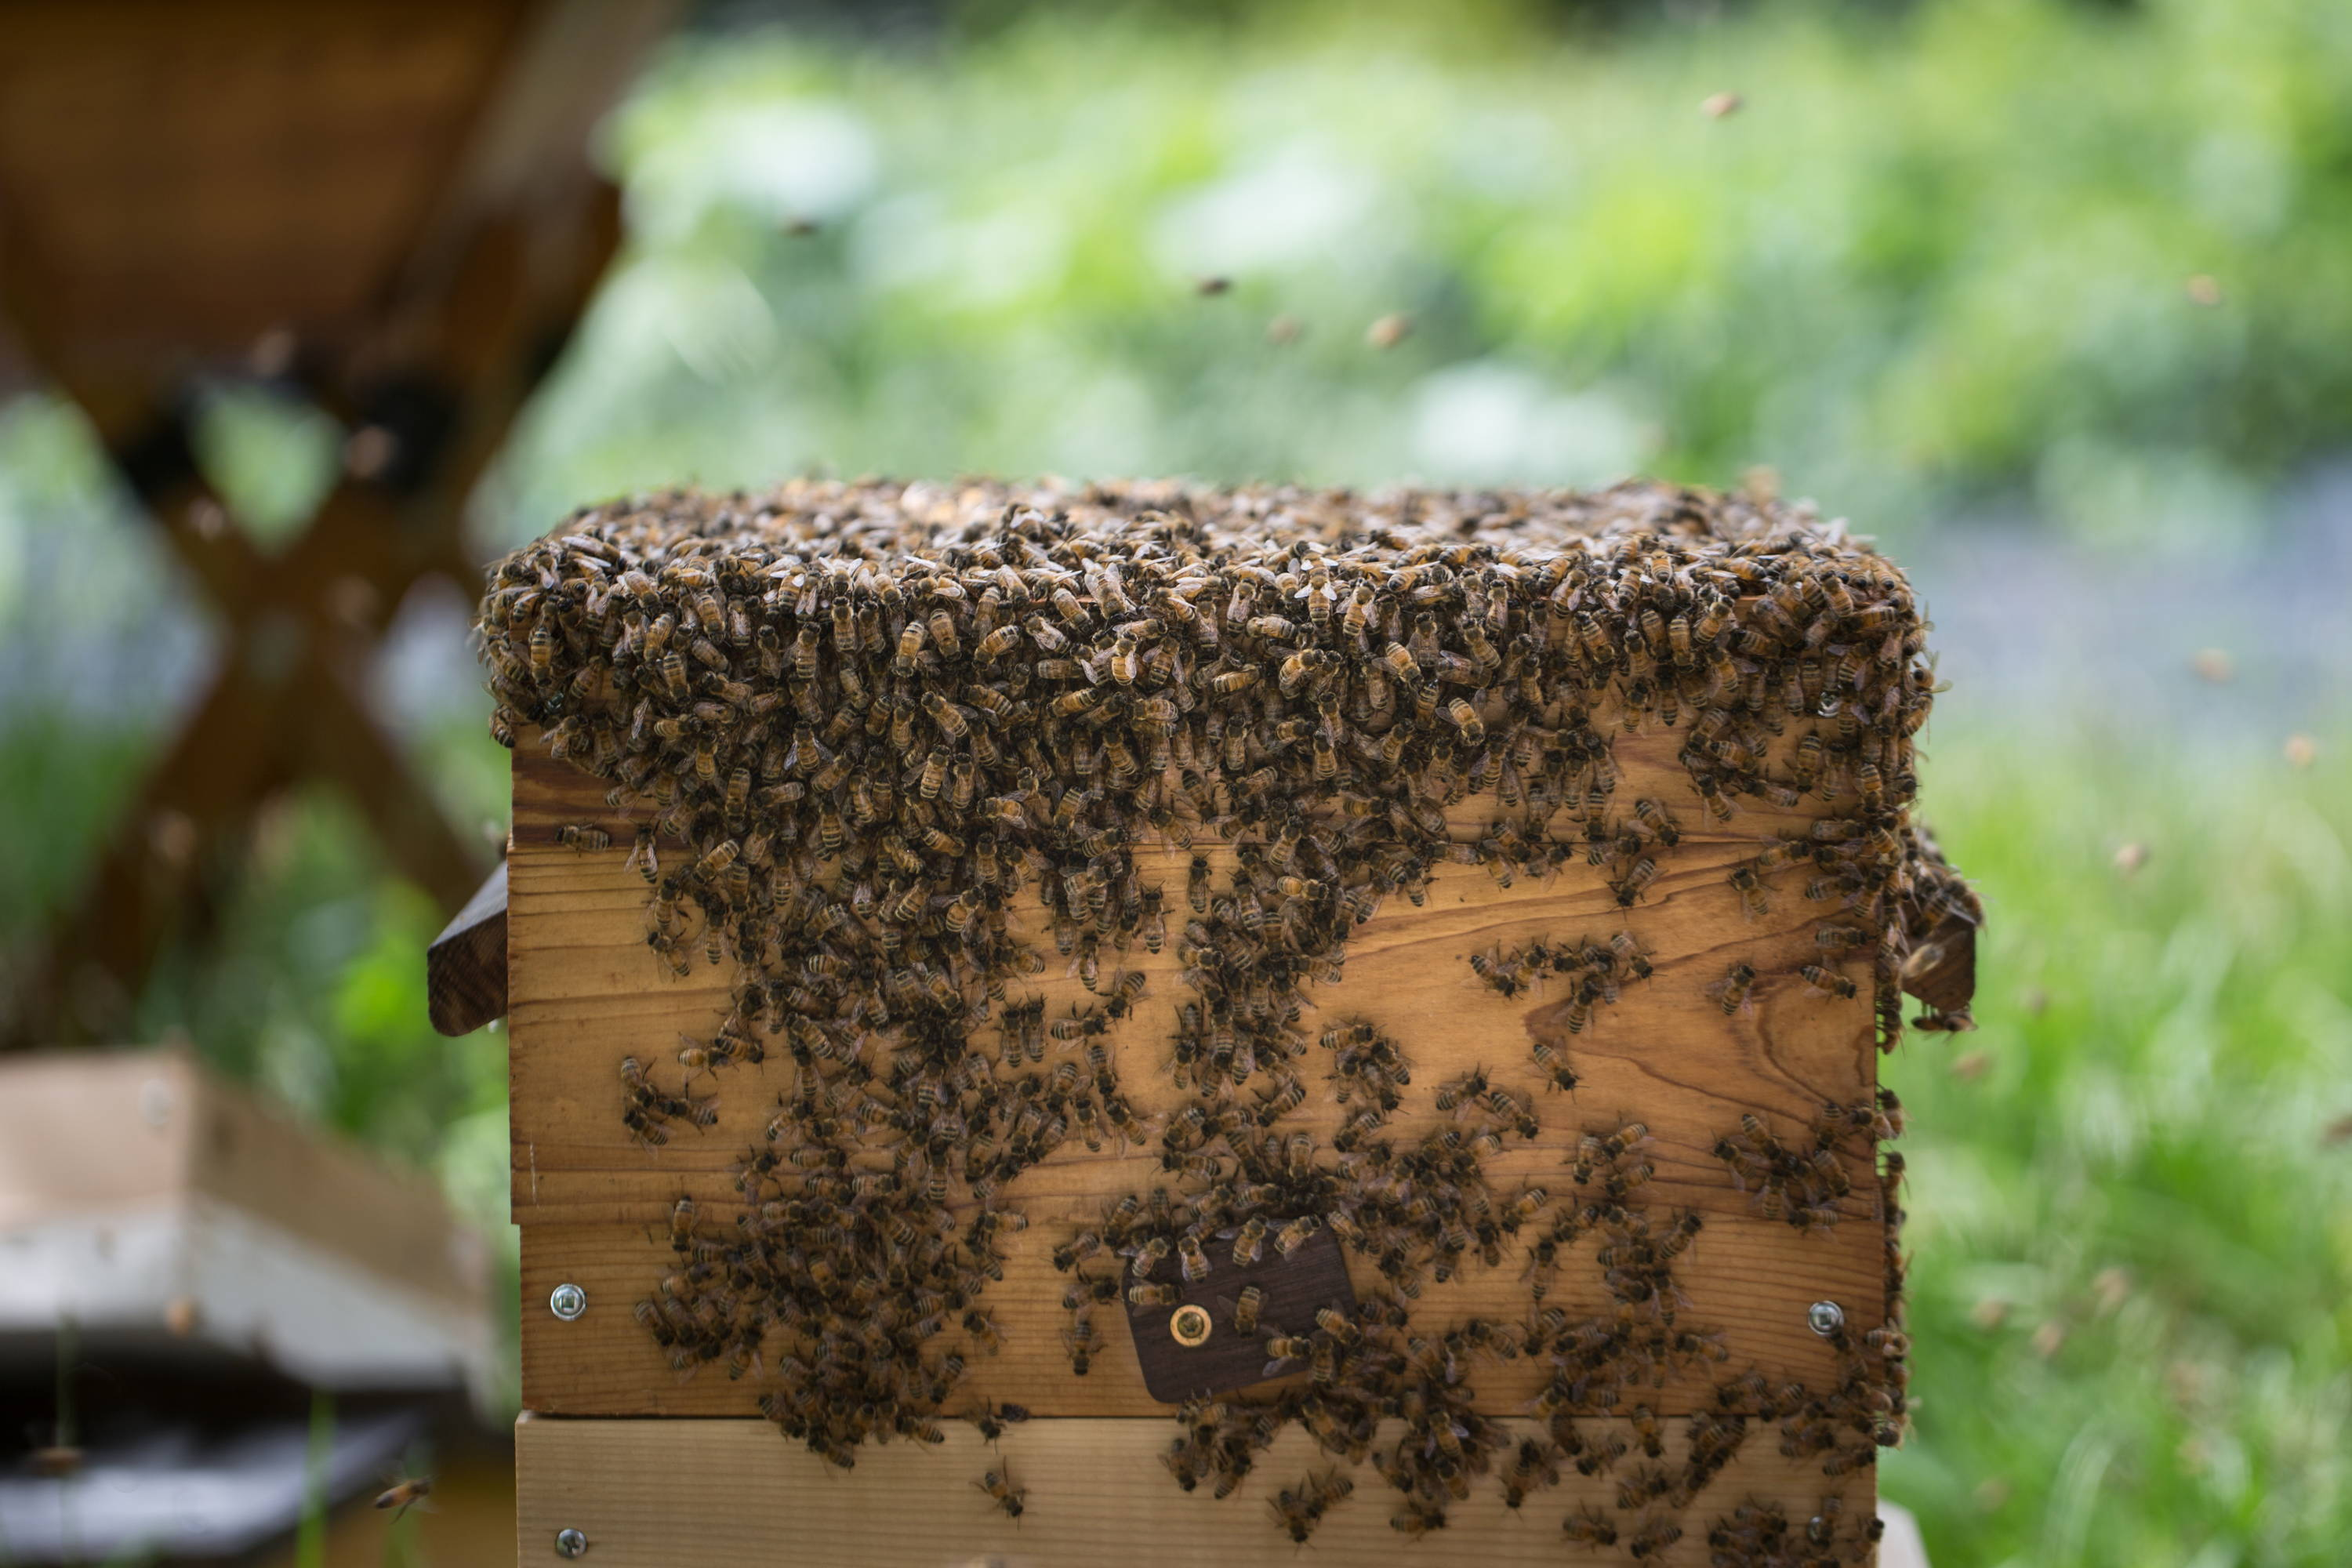 A warre hive box full of working bees